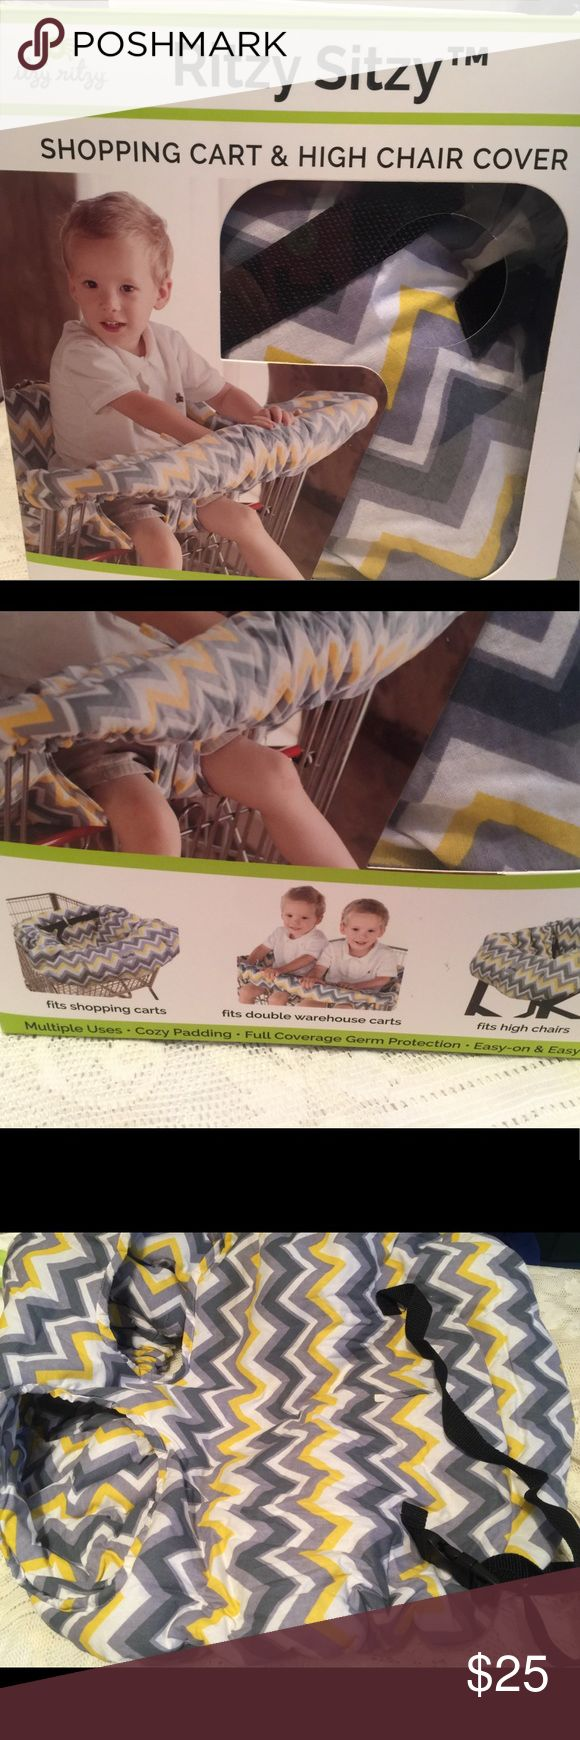 RITZY SITZY SHOPPING CART & HIGH CHAIR COVER. NIB Keep baby away from germs. The portable Ritzy Sitzy is comfortable, clean, and padded for ultimate comfort with a safety belt. This 100-percent cotton cover is reversible to extend product life. There are (2) toy loops and (2) pockets included to stow keys and a cell phone and keep toys from dropping. Ritzy Sitzy Other